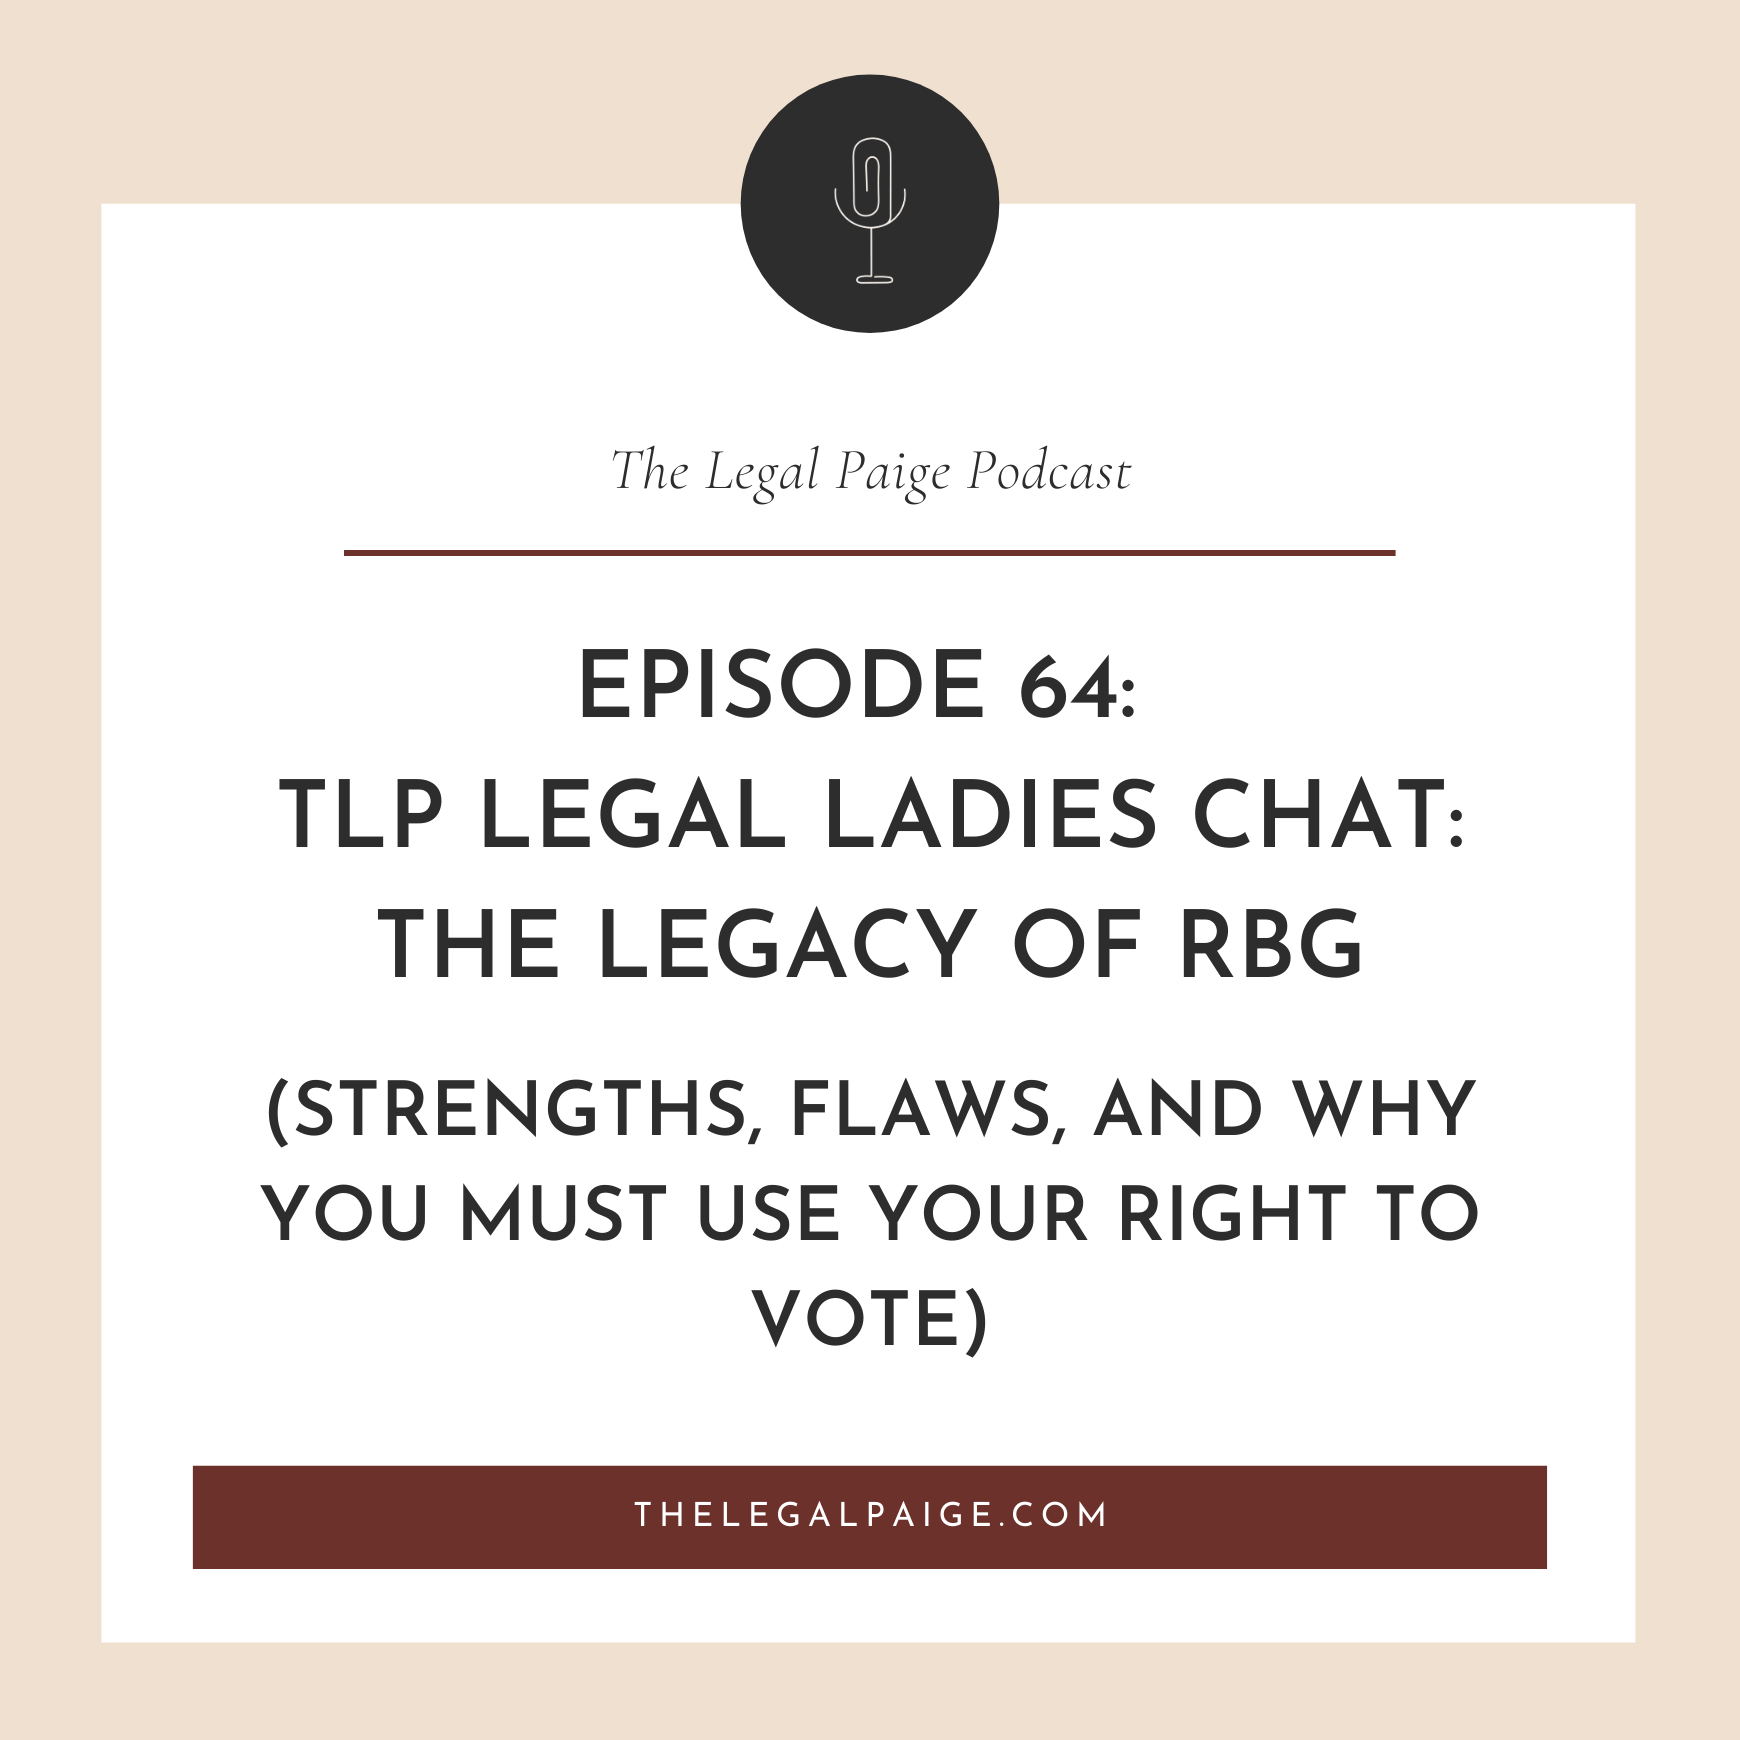 EP 64: TLP Legal Ladies Chat: The Legacy of RBG (strengths, flaws, and why you must use your right to vote).